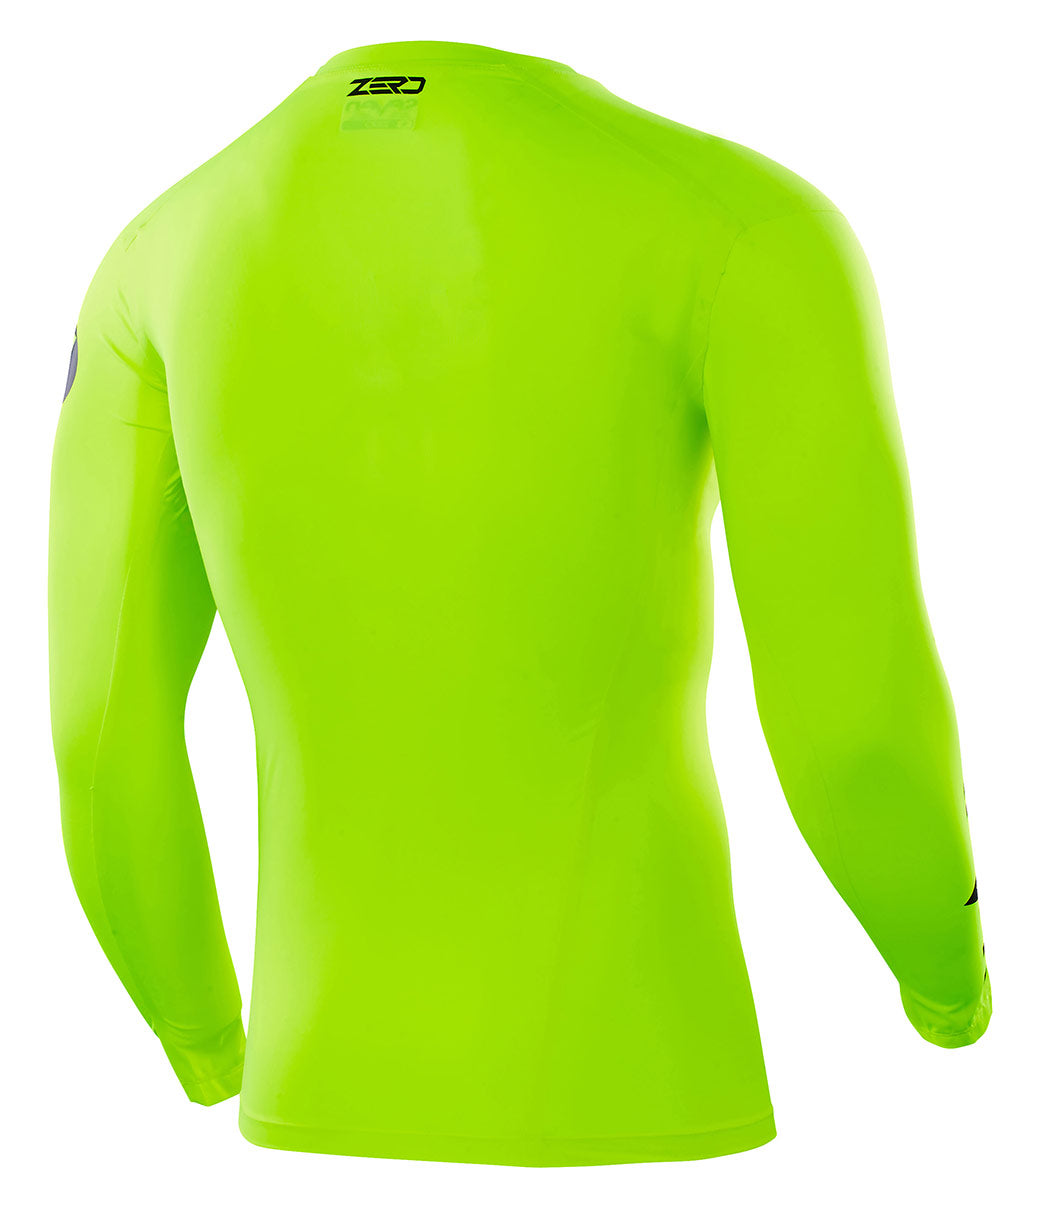 Youth Zero Compression Jersey - Flo Yellow